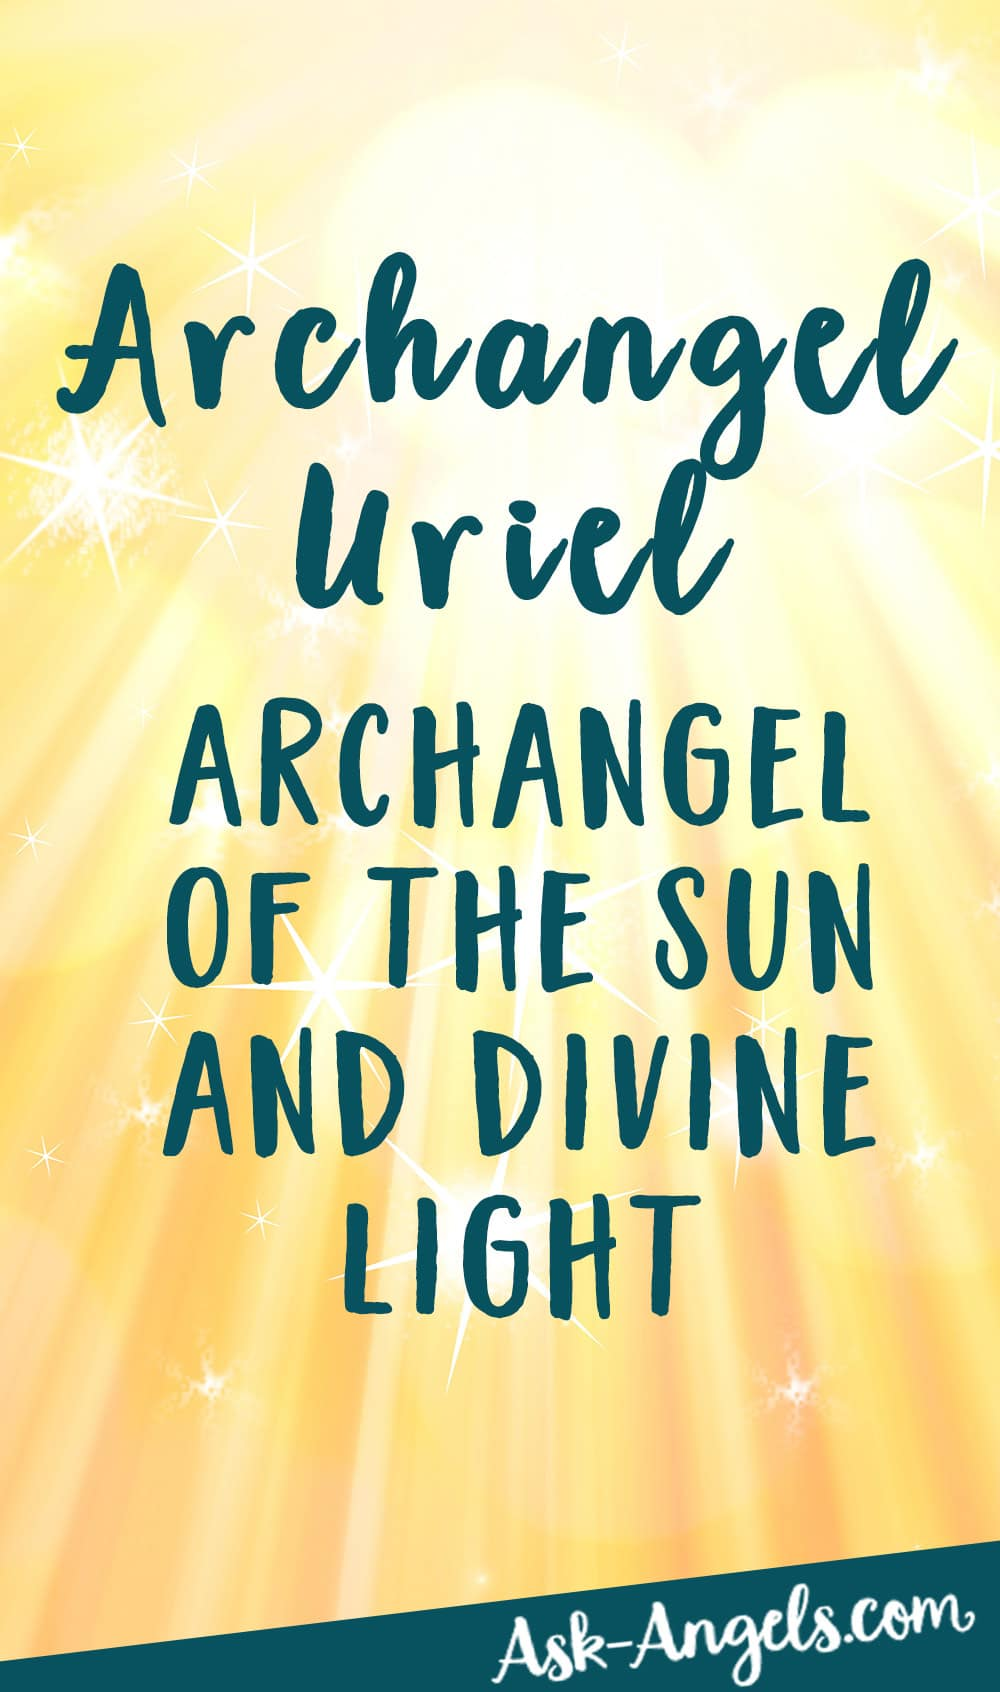 Archangel Uriel - Invoke the Angel of Wisdom, Illumination